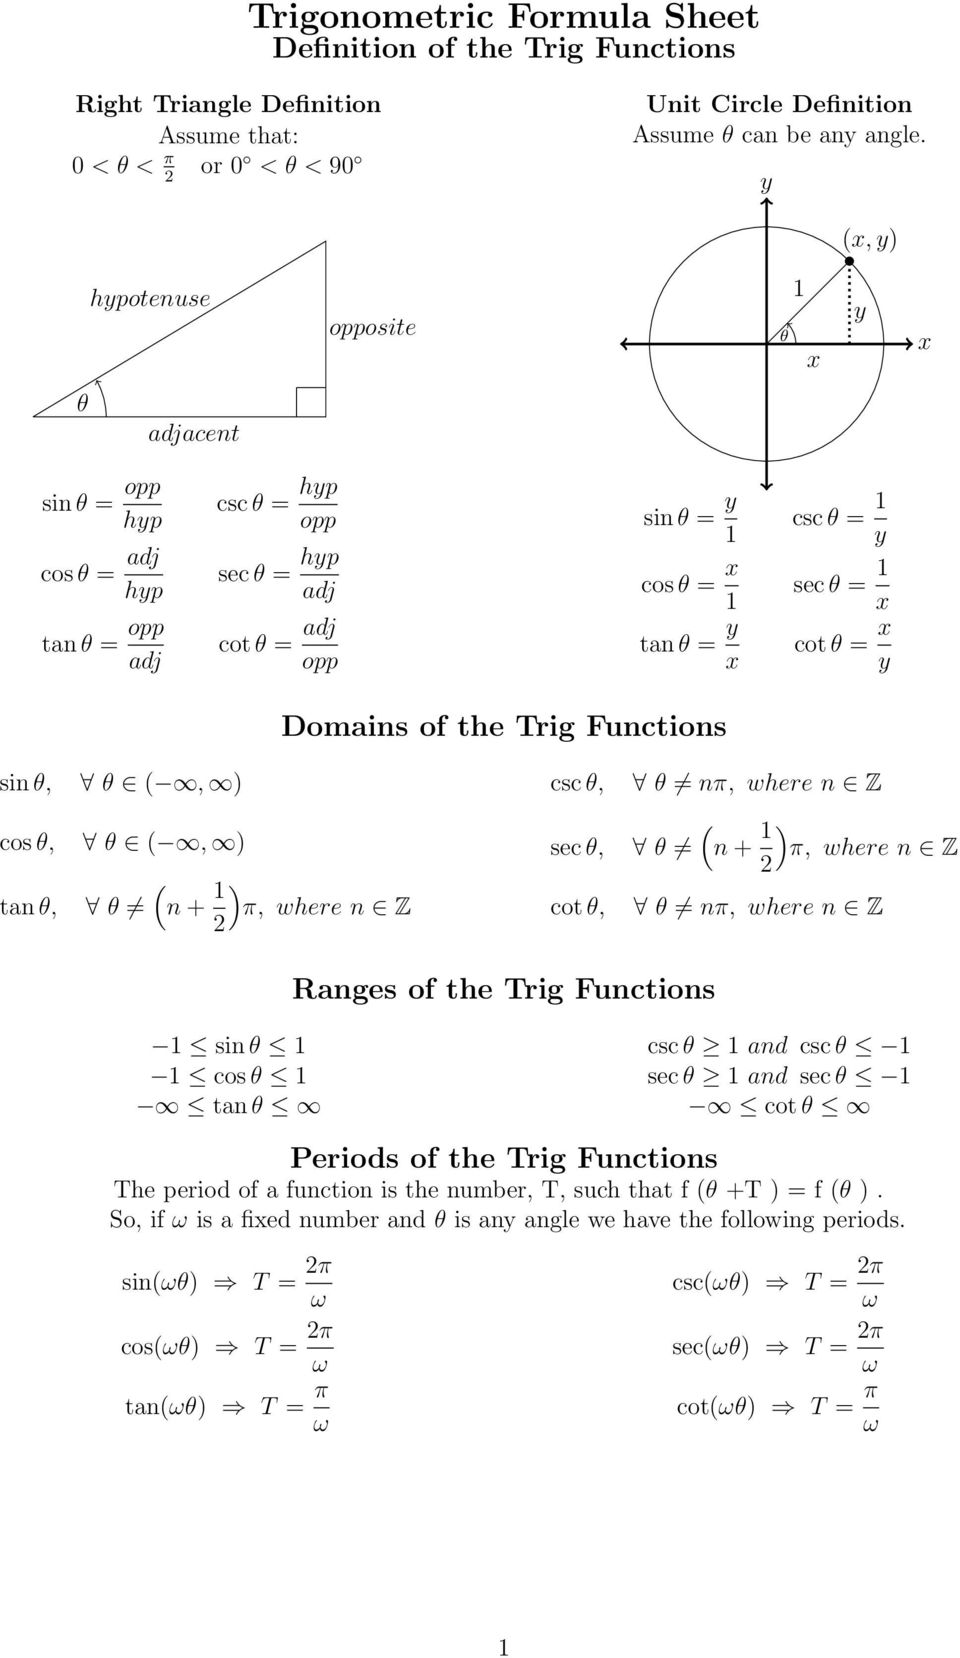 = x y Domains of the Trig Functions sin θ, θ, cos θ, θ, tan θ, θ n +, where n Z csc θ, sec θ, cot θ, θ n, where n Z θ n +, where n Z θ n, where n Z Ranges of the Trig Functions sin θ cos θ tan θ csc